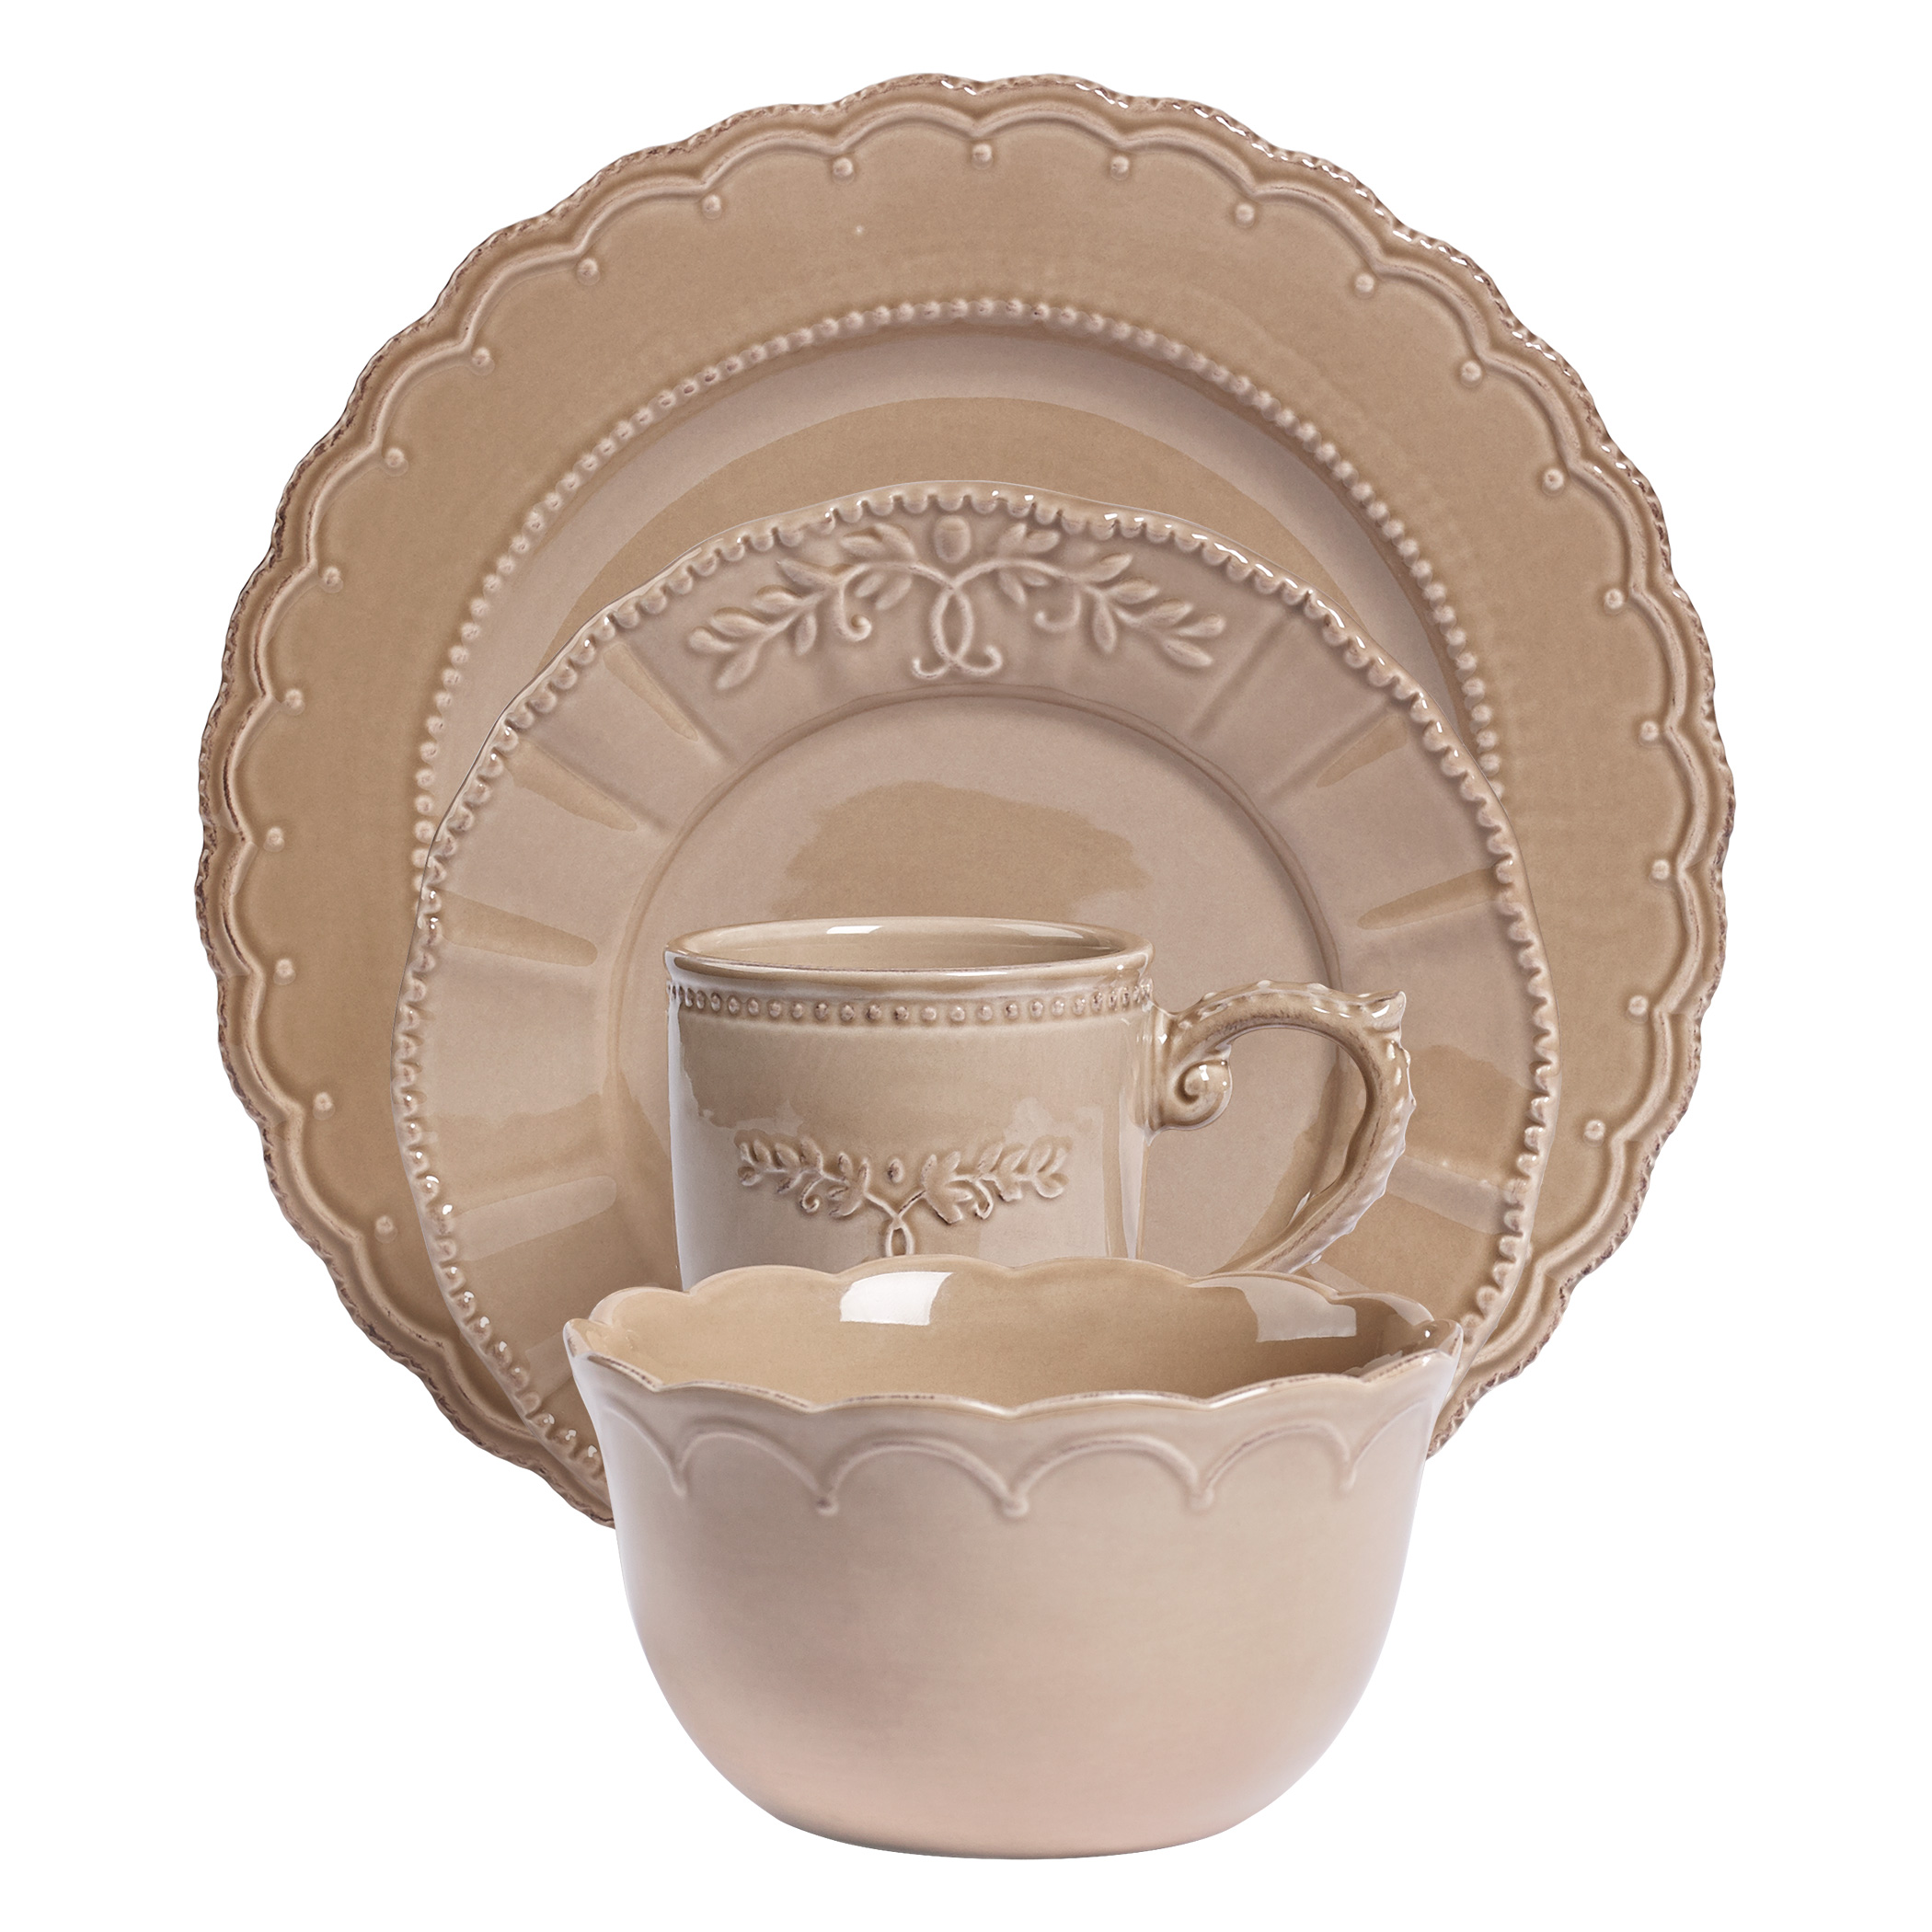 Awesome stoneware dishes for kitchen and dining sets ideas with stoneware dishes made in usa